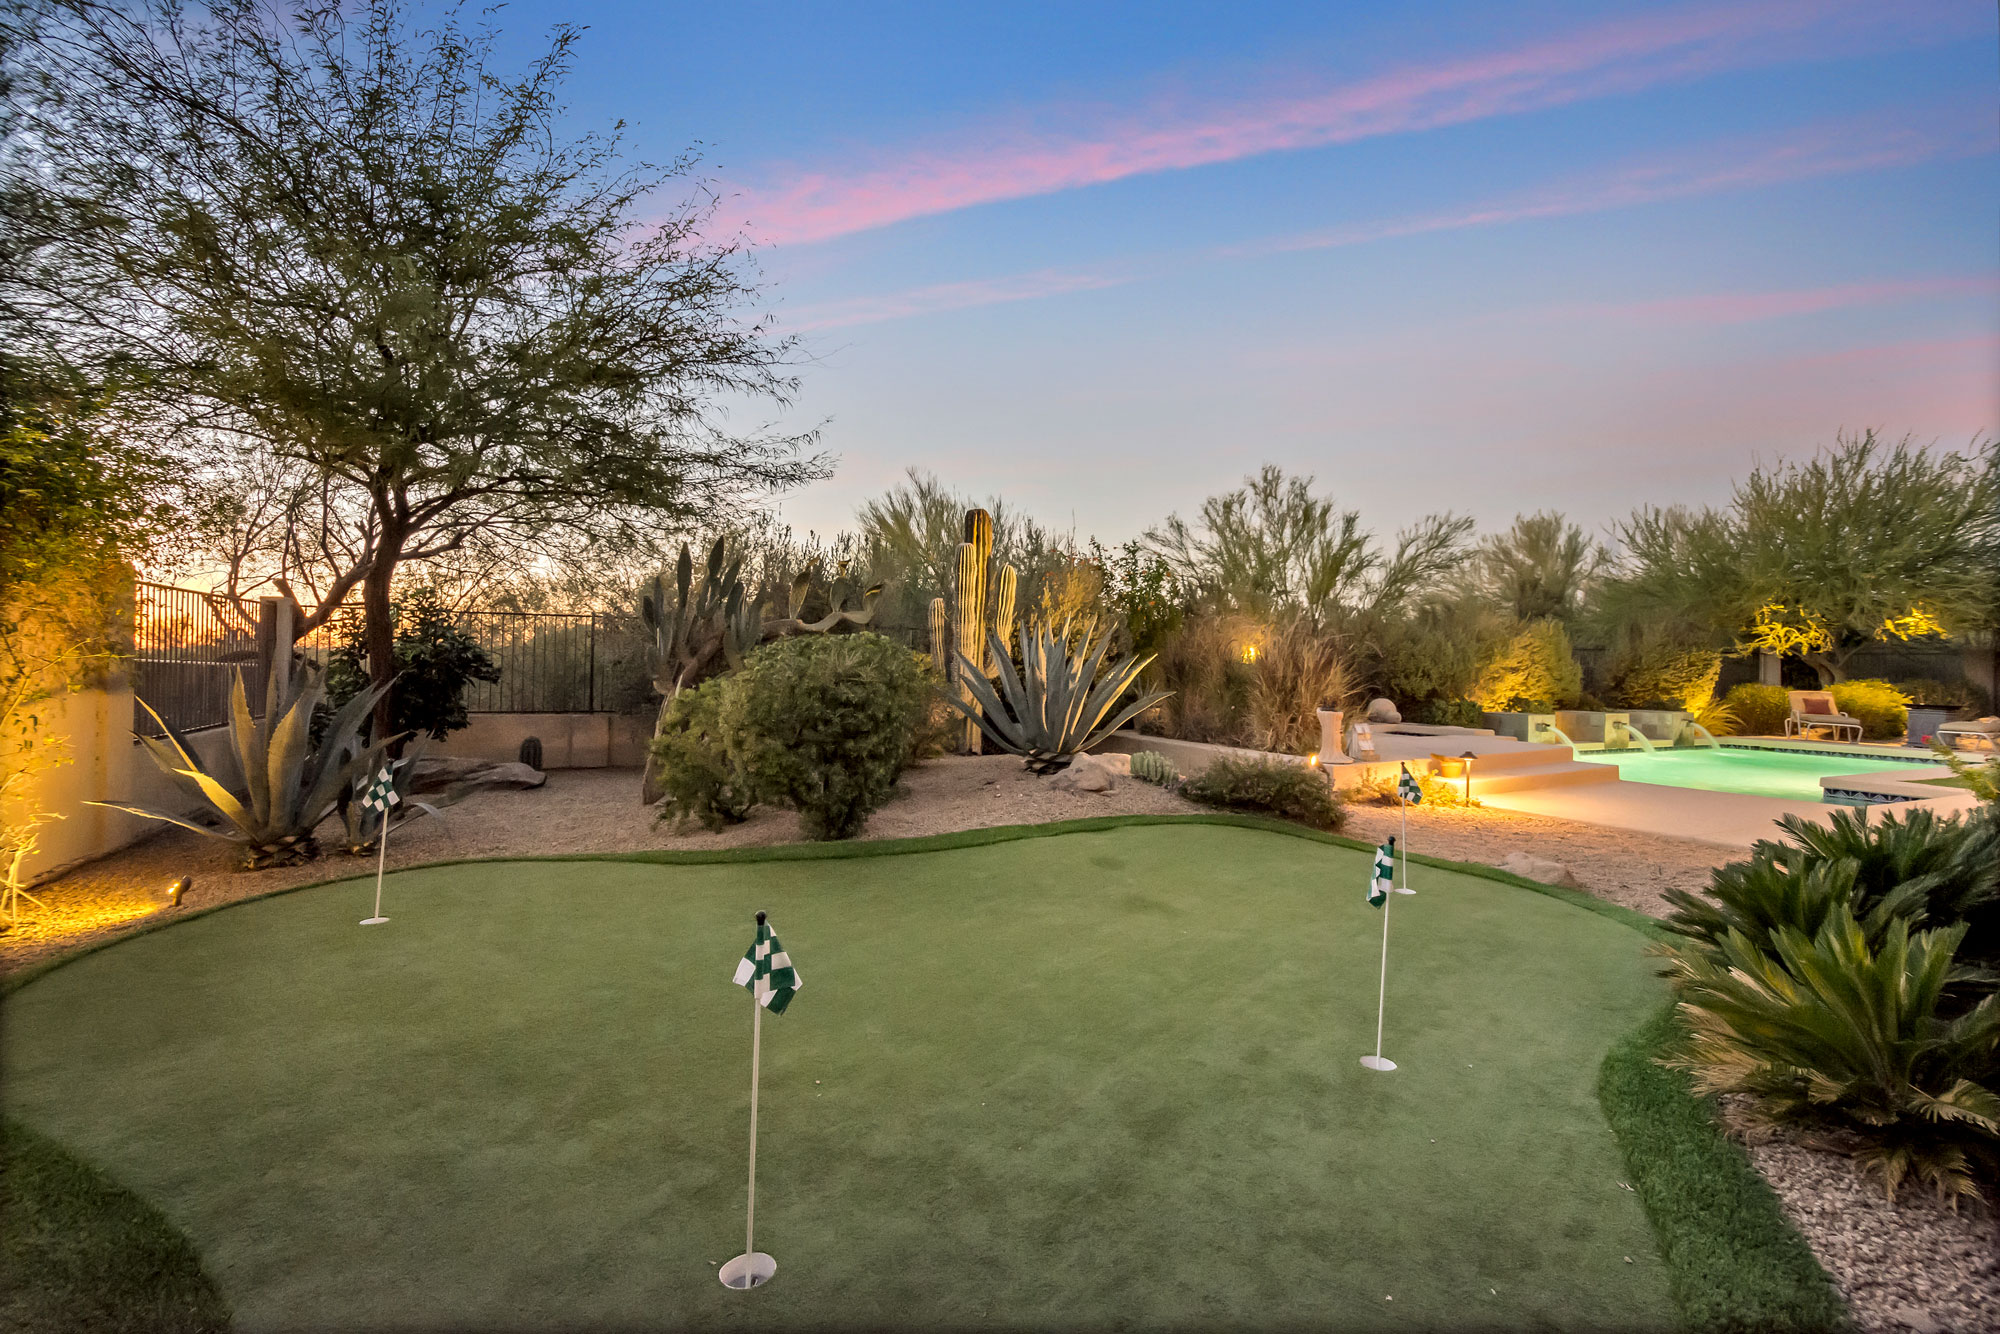 7710 E Evening Glow Dr Scottsdale, AZ 85266 Putting Green